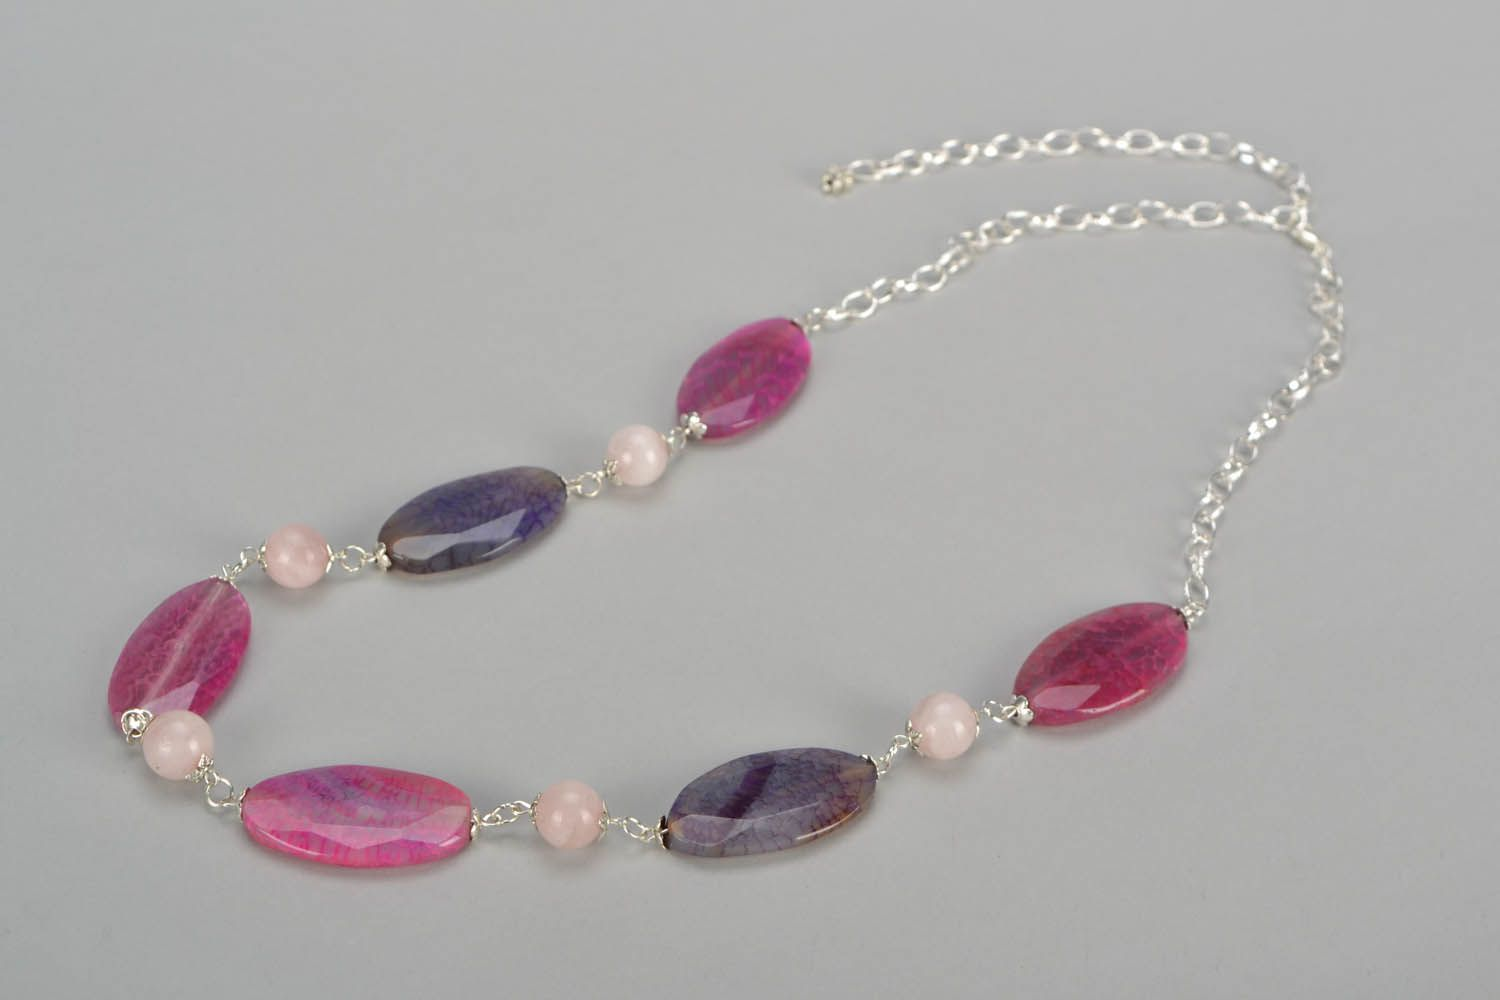 Necklace with natural stones photo 3